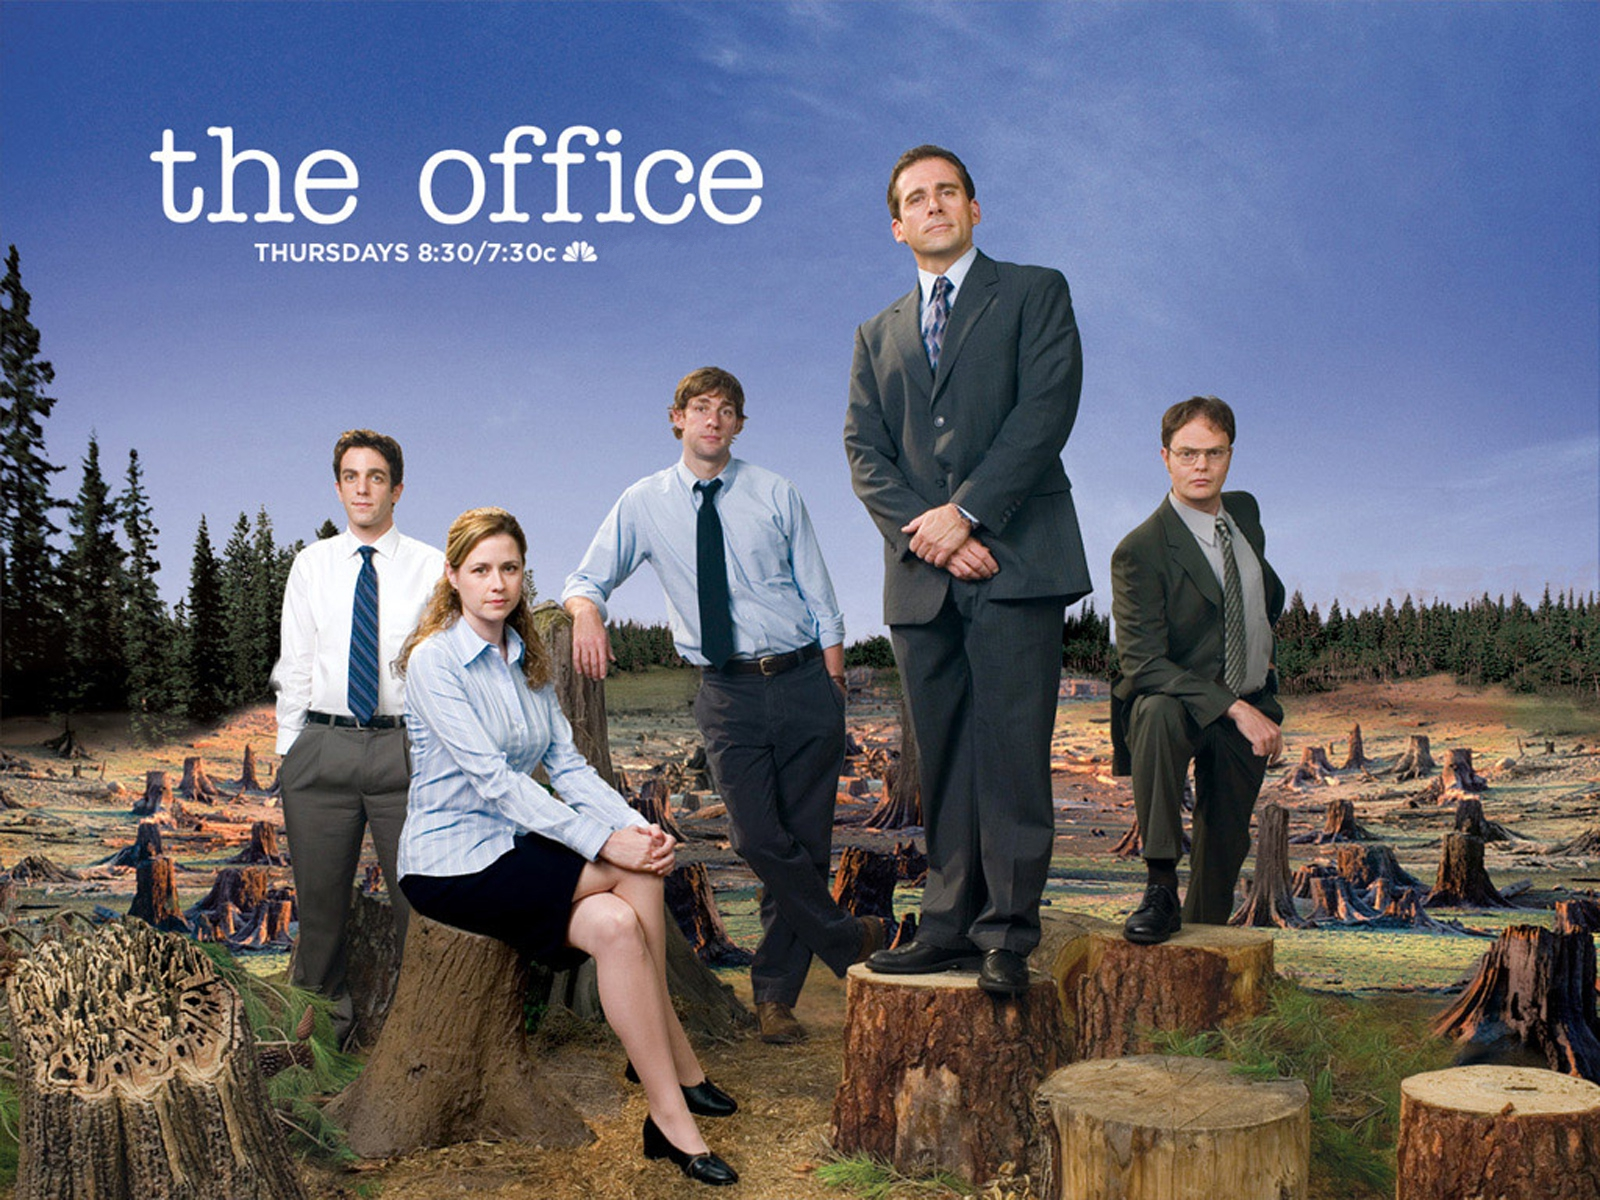 The Office Wallpapers, Pictures, Image